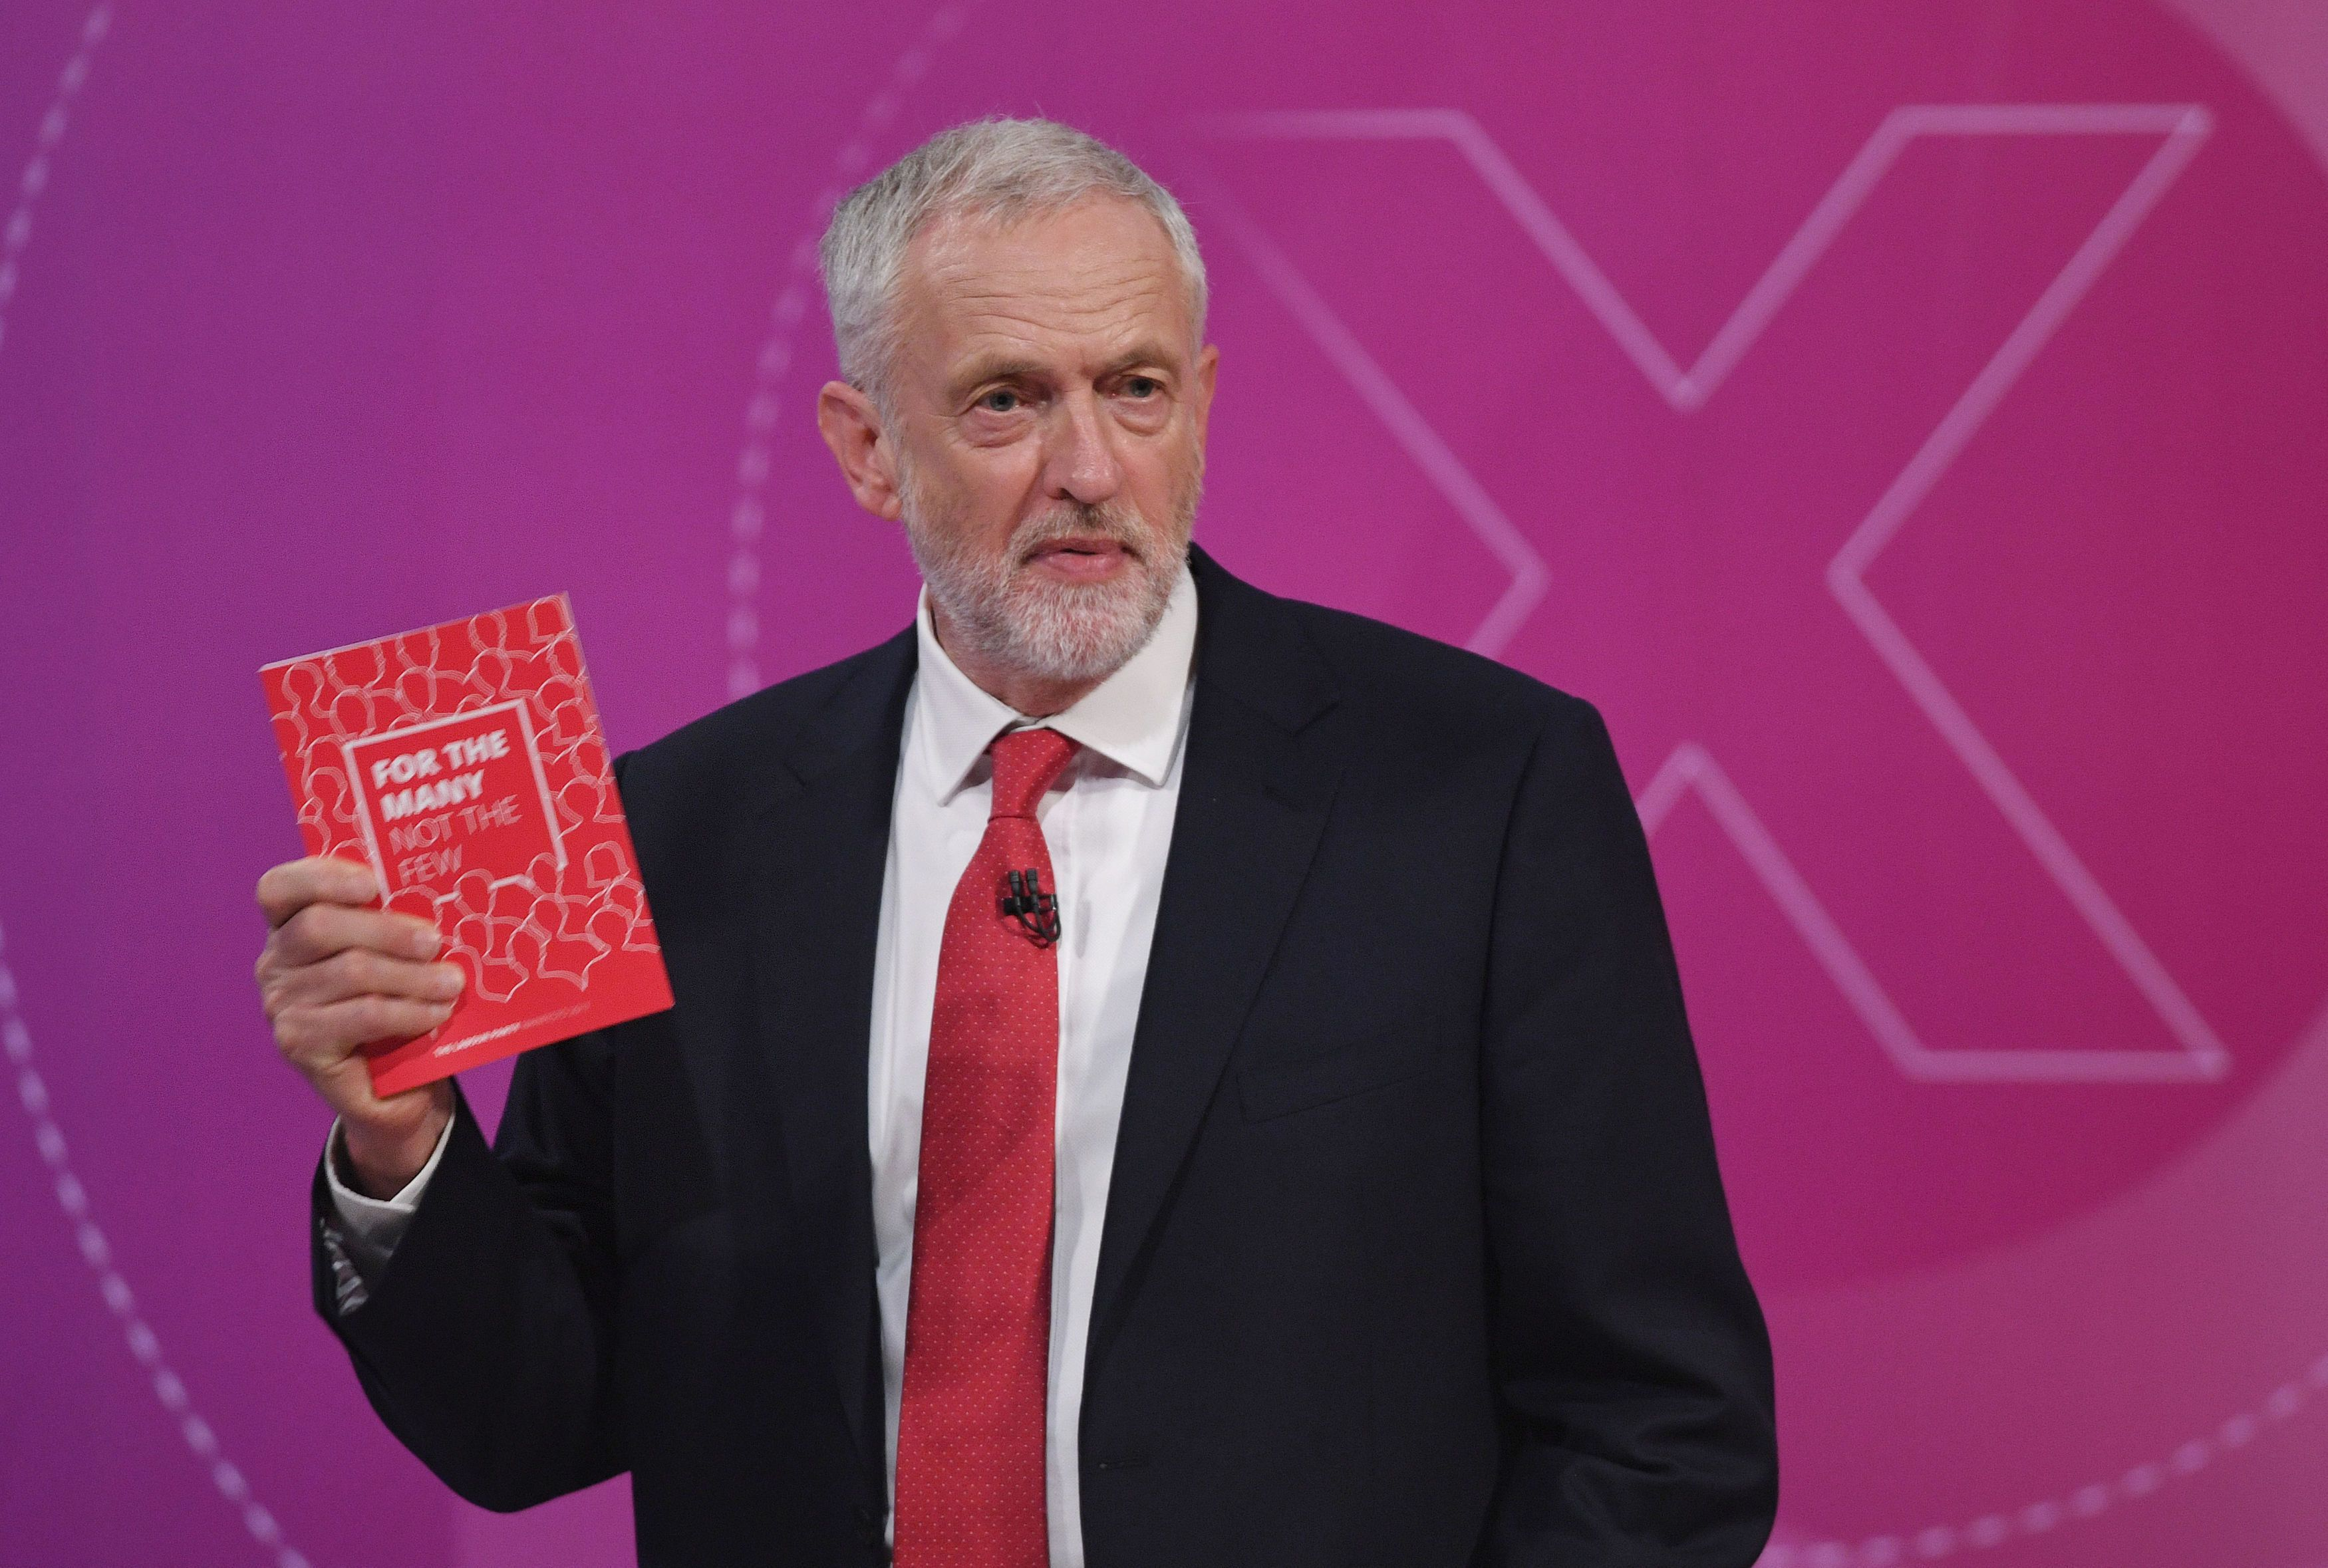 <i>Jeremy Corbyn vowed to scrap tuition fees if Labour won the 2017 General Election.</i>